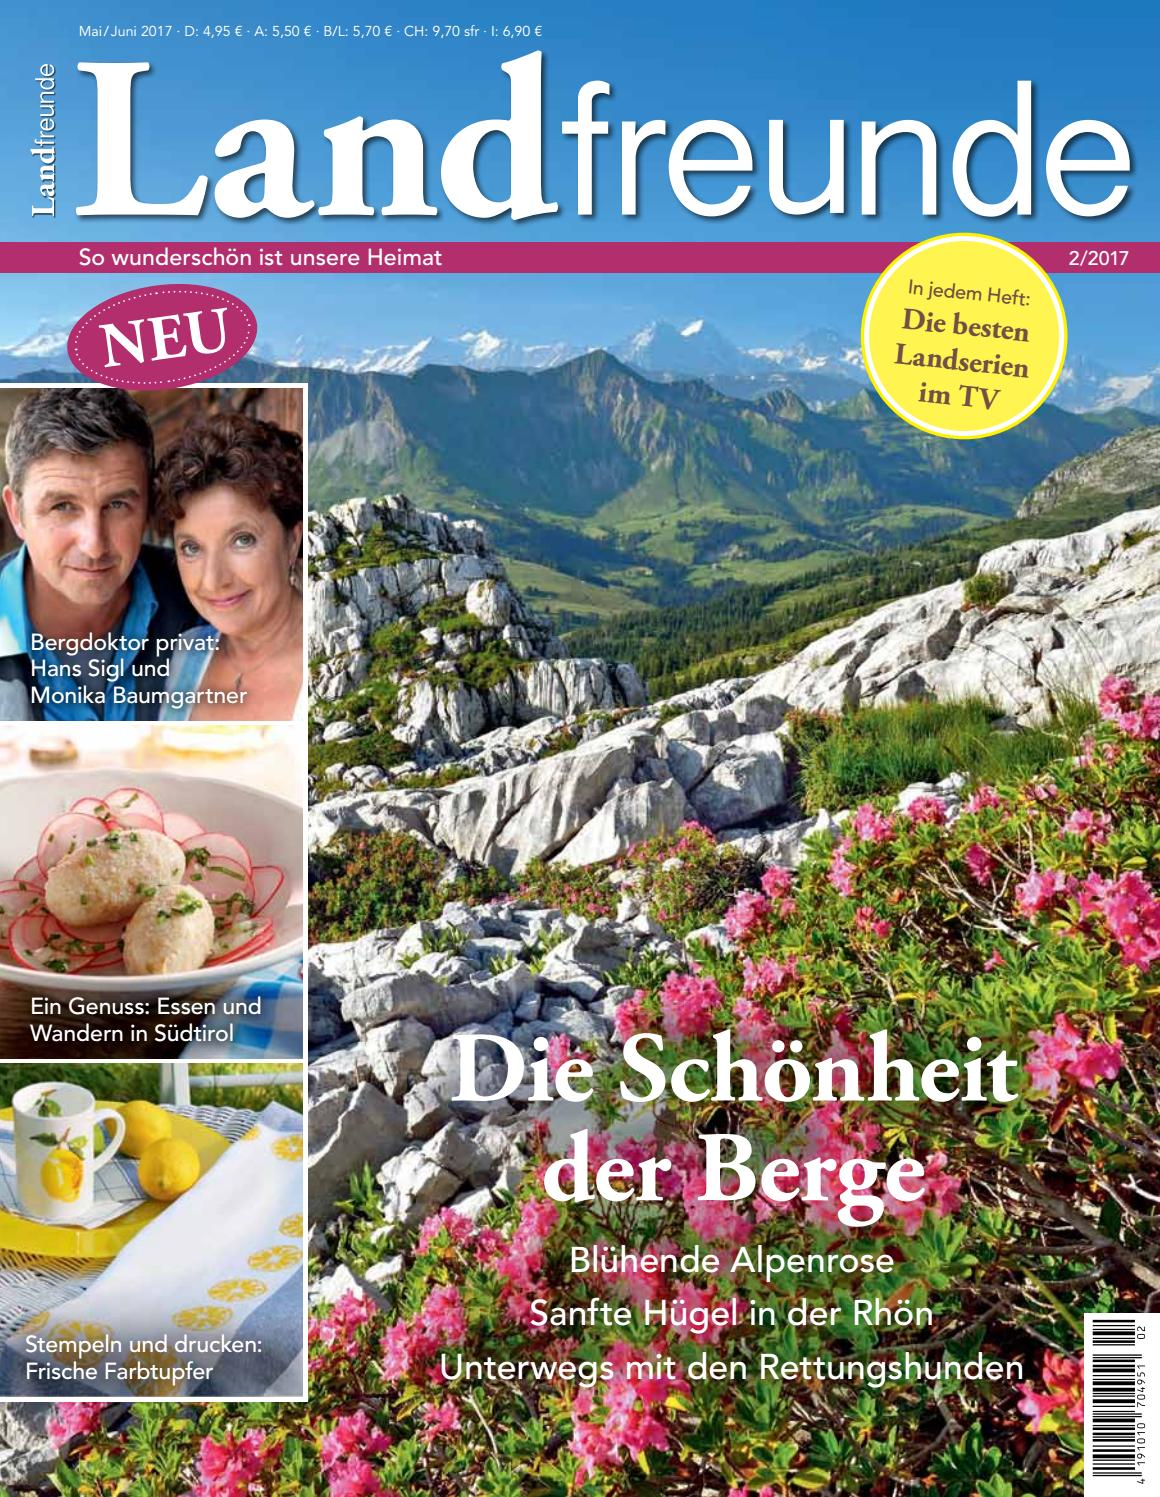 Landfreunde 0217 komplett pdf klein by Vinschgau Marketing - issuu